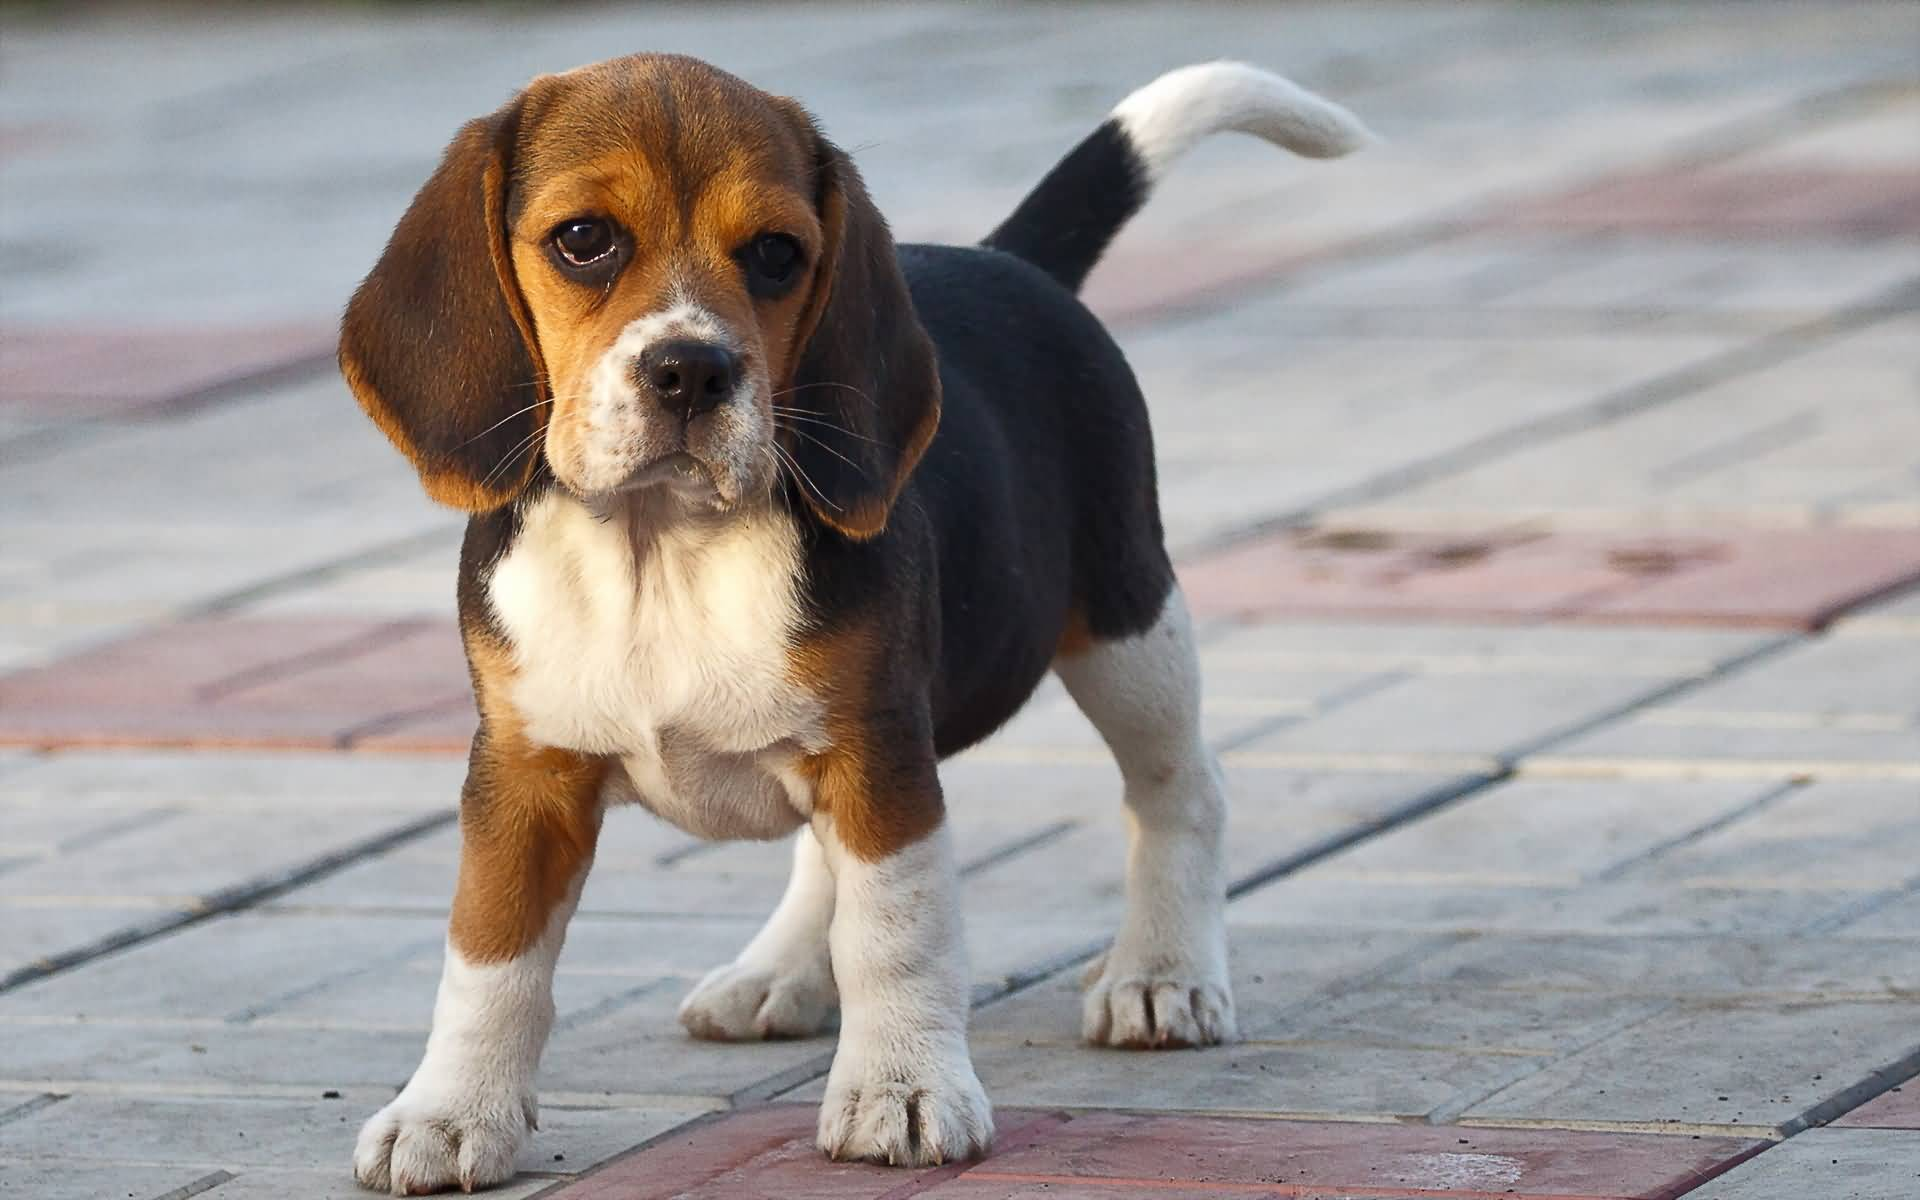 Sade Beagle Dog Puppies Image For Desktop